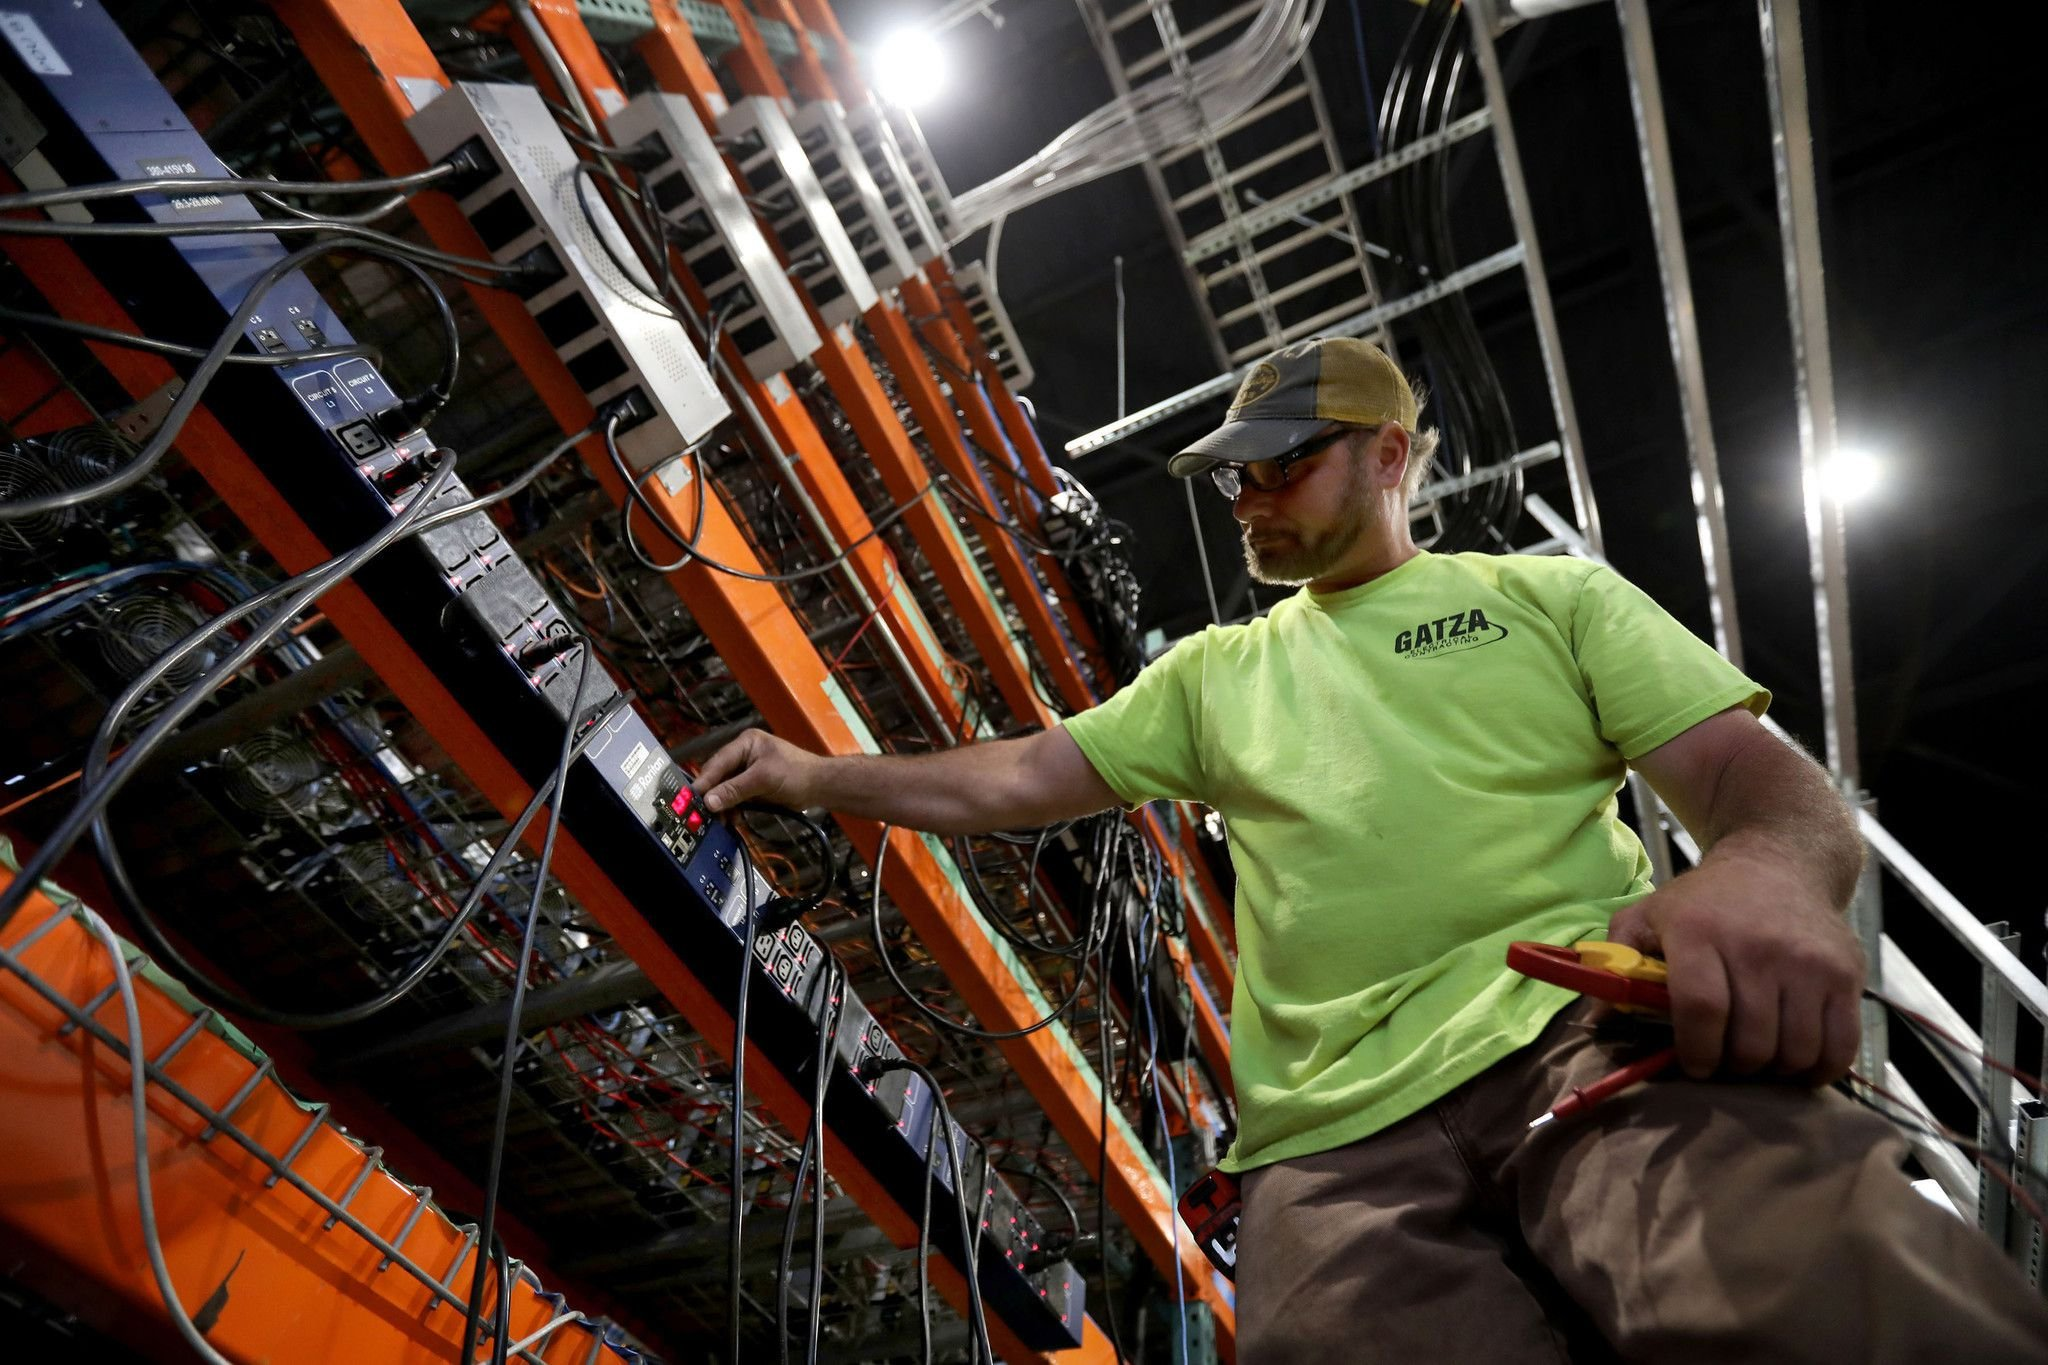 An electrician checks voltages and amperages on cryptocurrency computer mining rigs at...